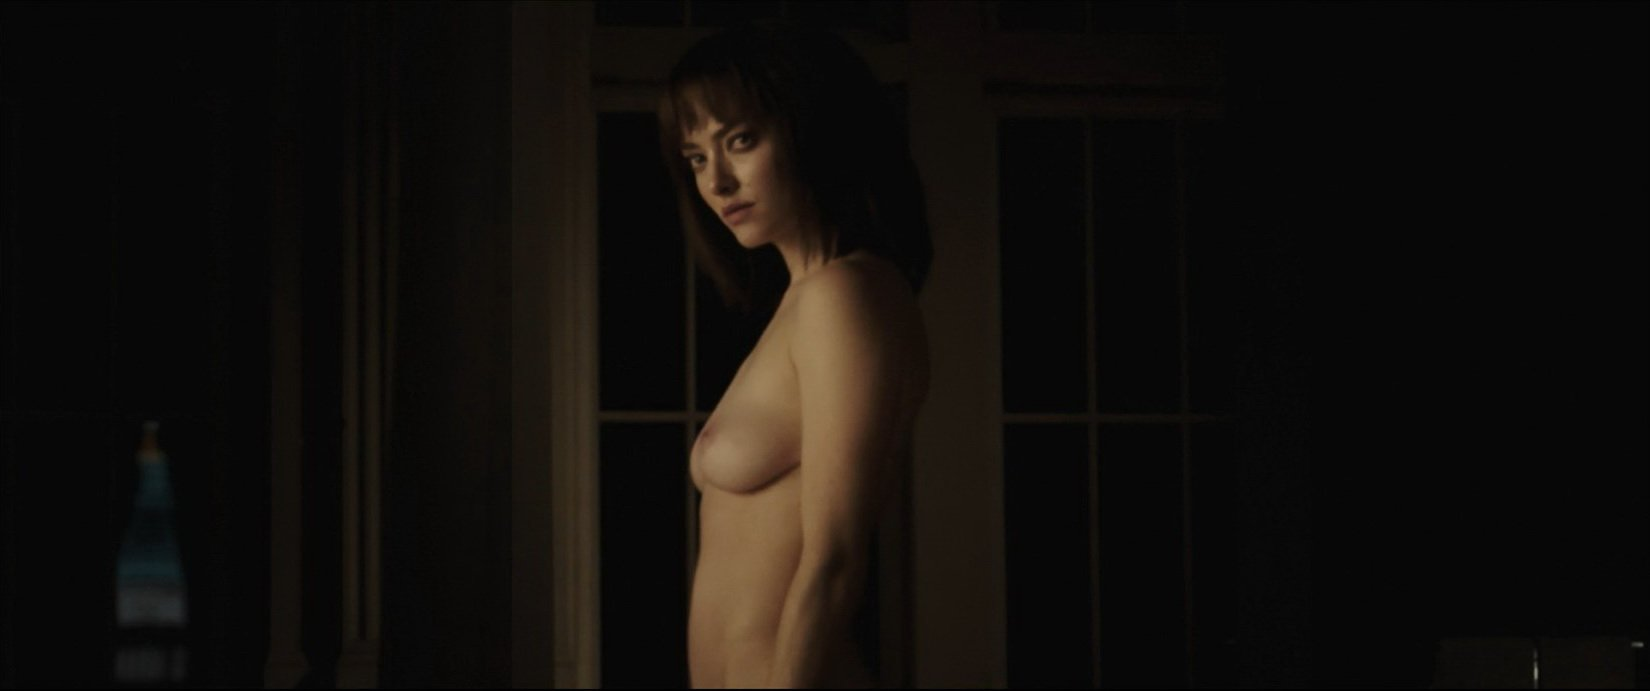 Amanda Seyfried nude - Anon (2018)